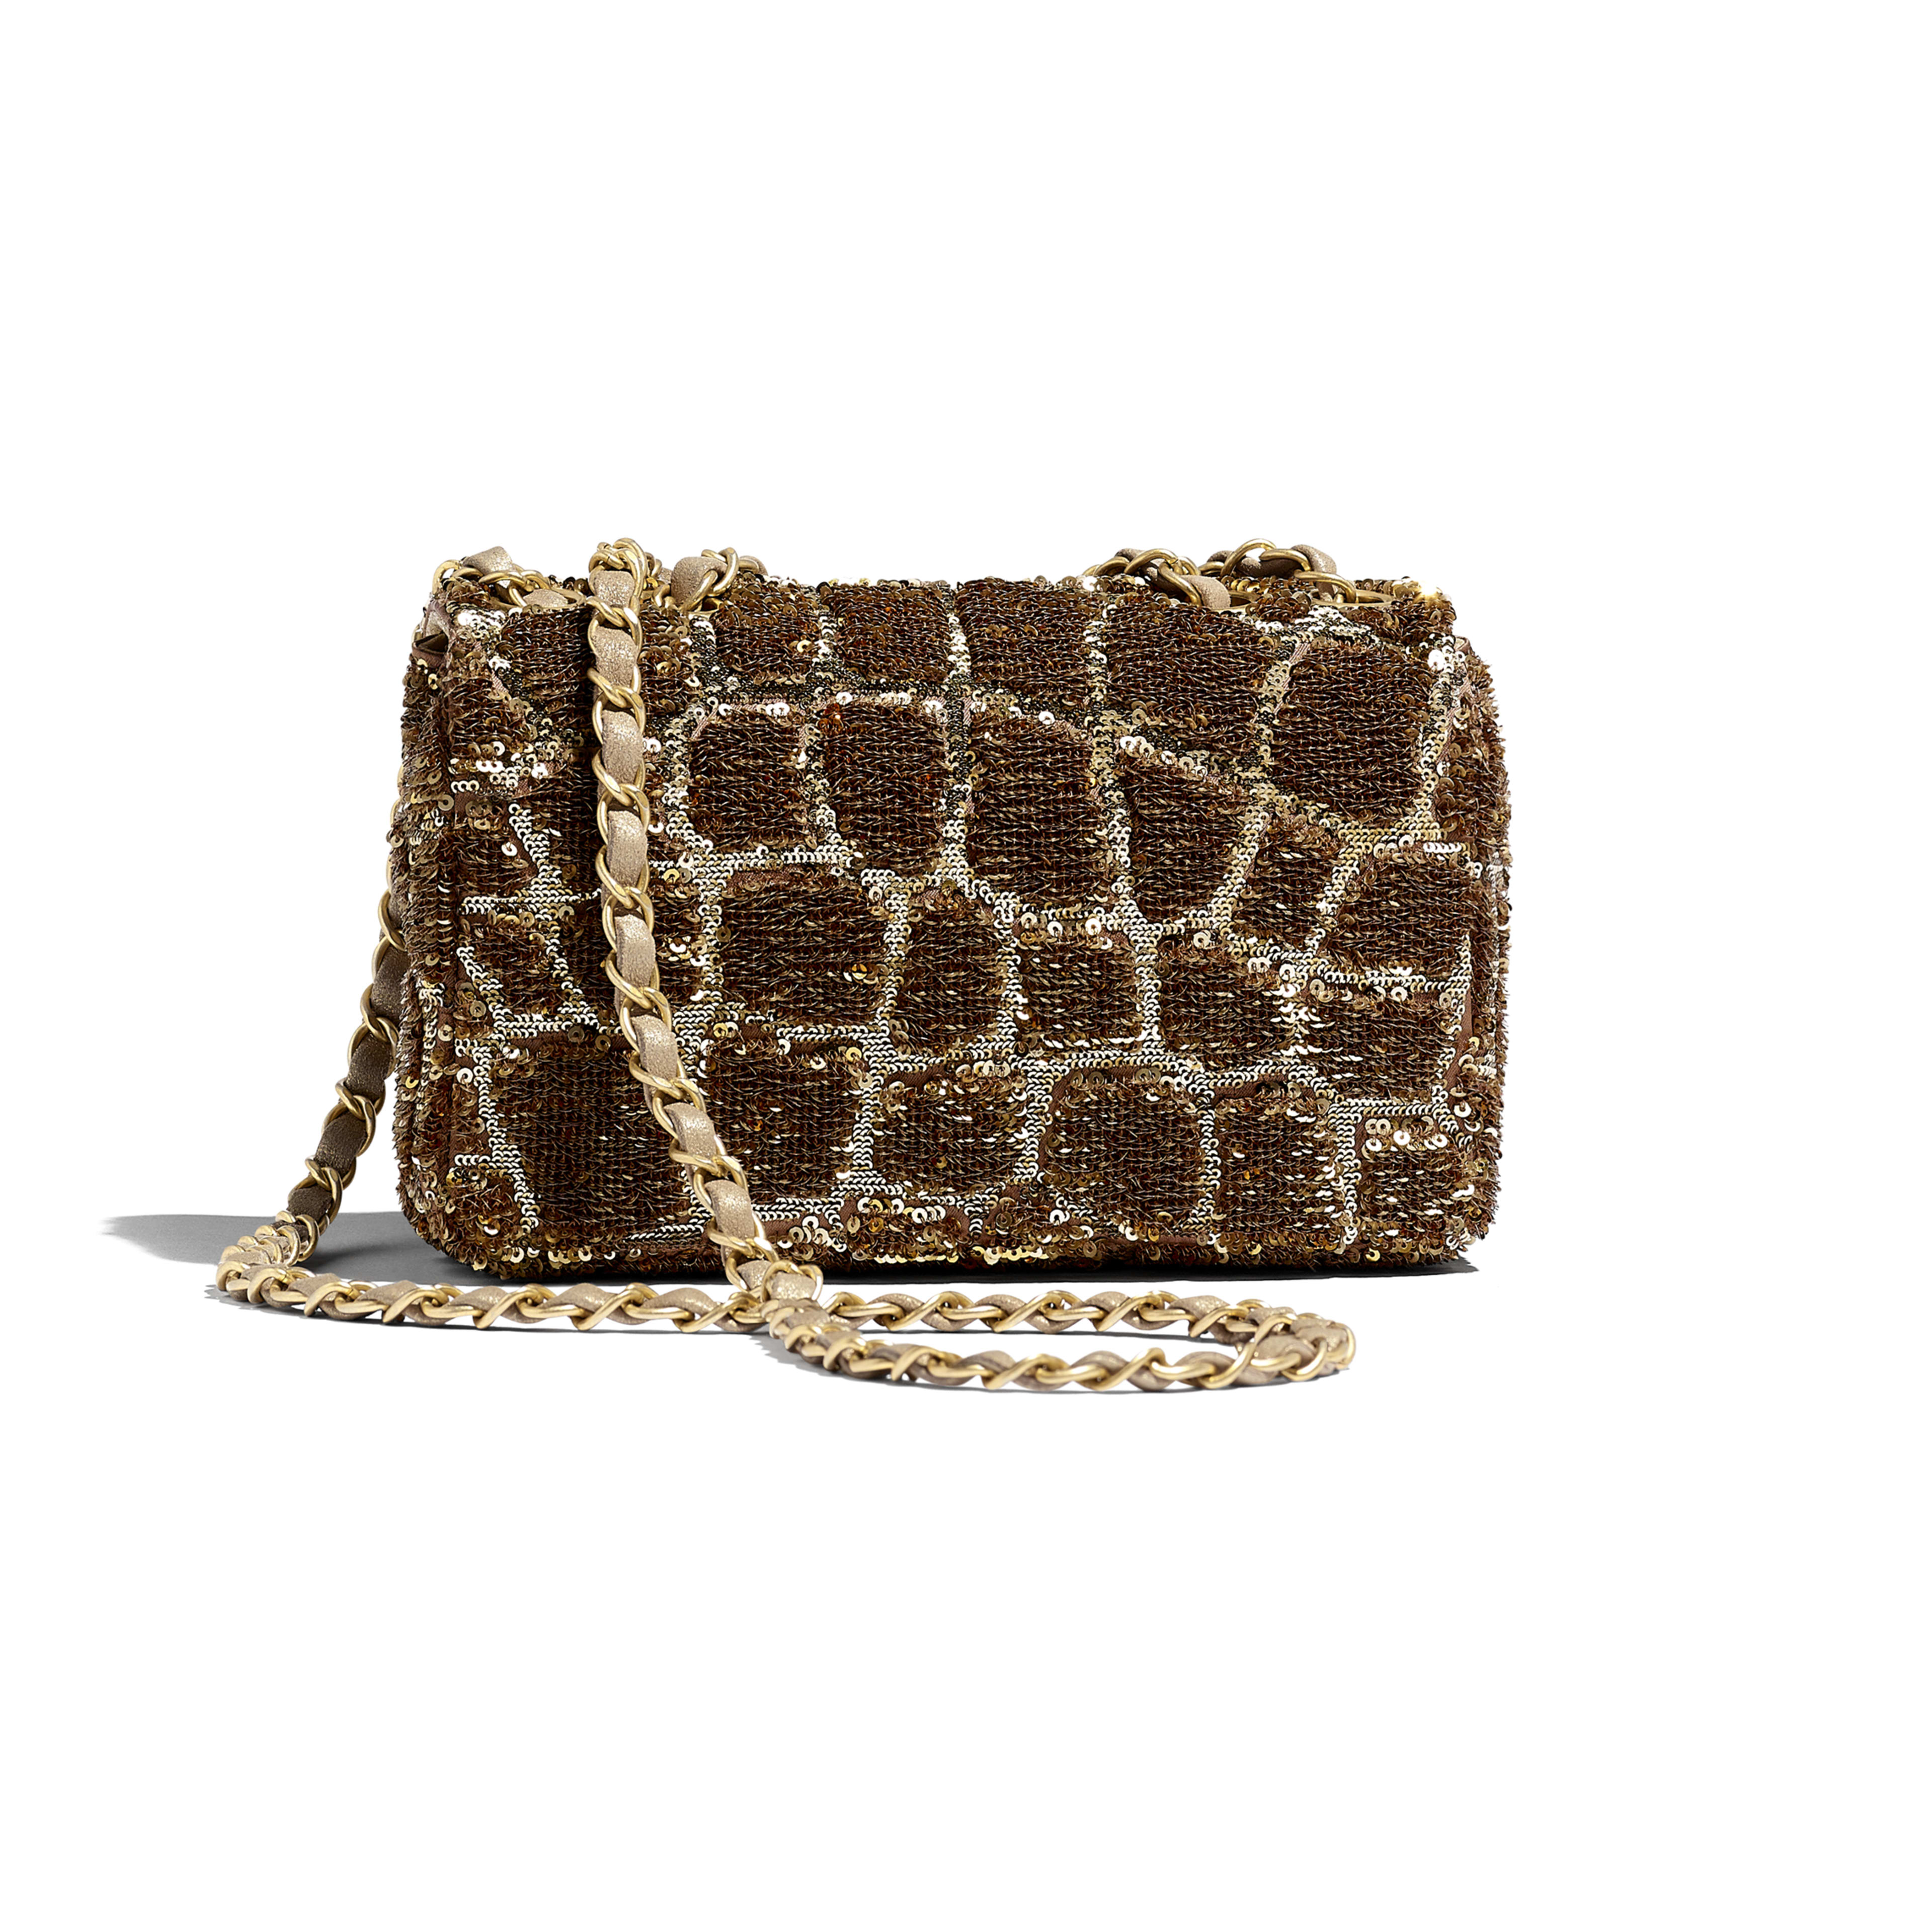 Small Flap Bag - Gold & Copper - Sequins & Gold-Tone Metal - Alternative view - see full sized version